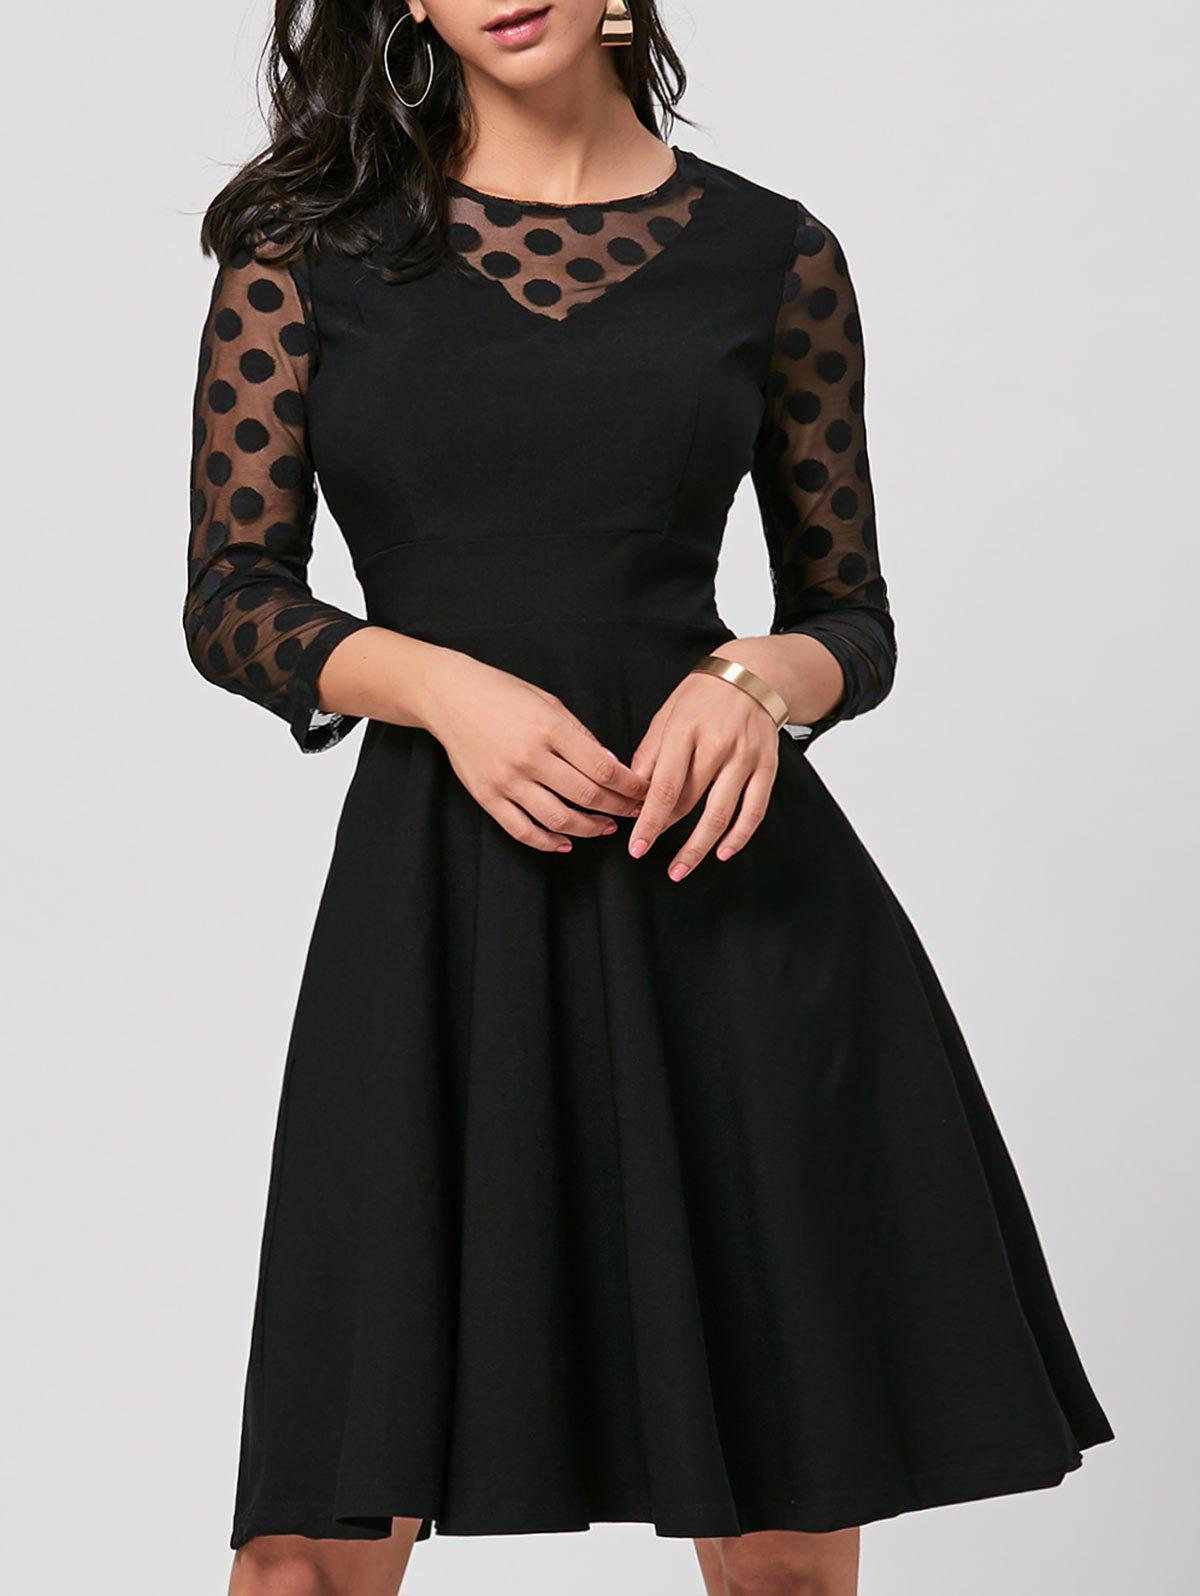 Mesh Insert Polka Dot Skater Dress - BLACK 2XL